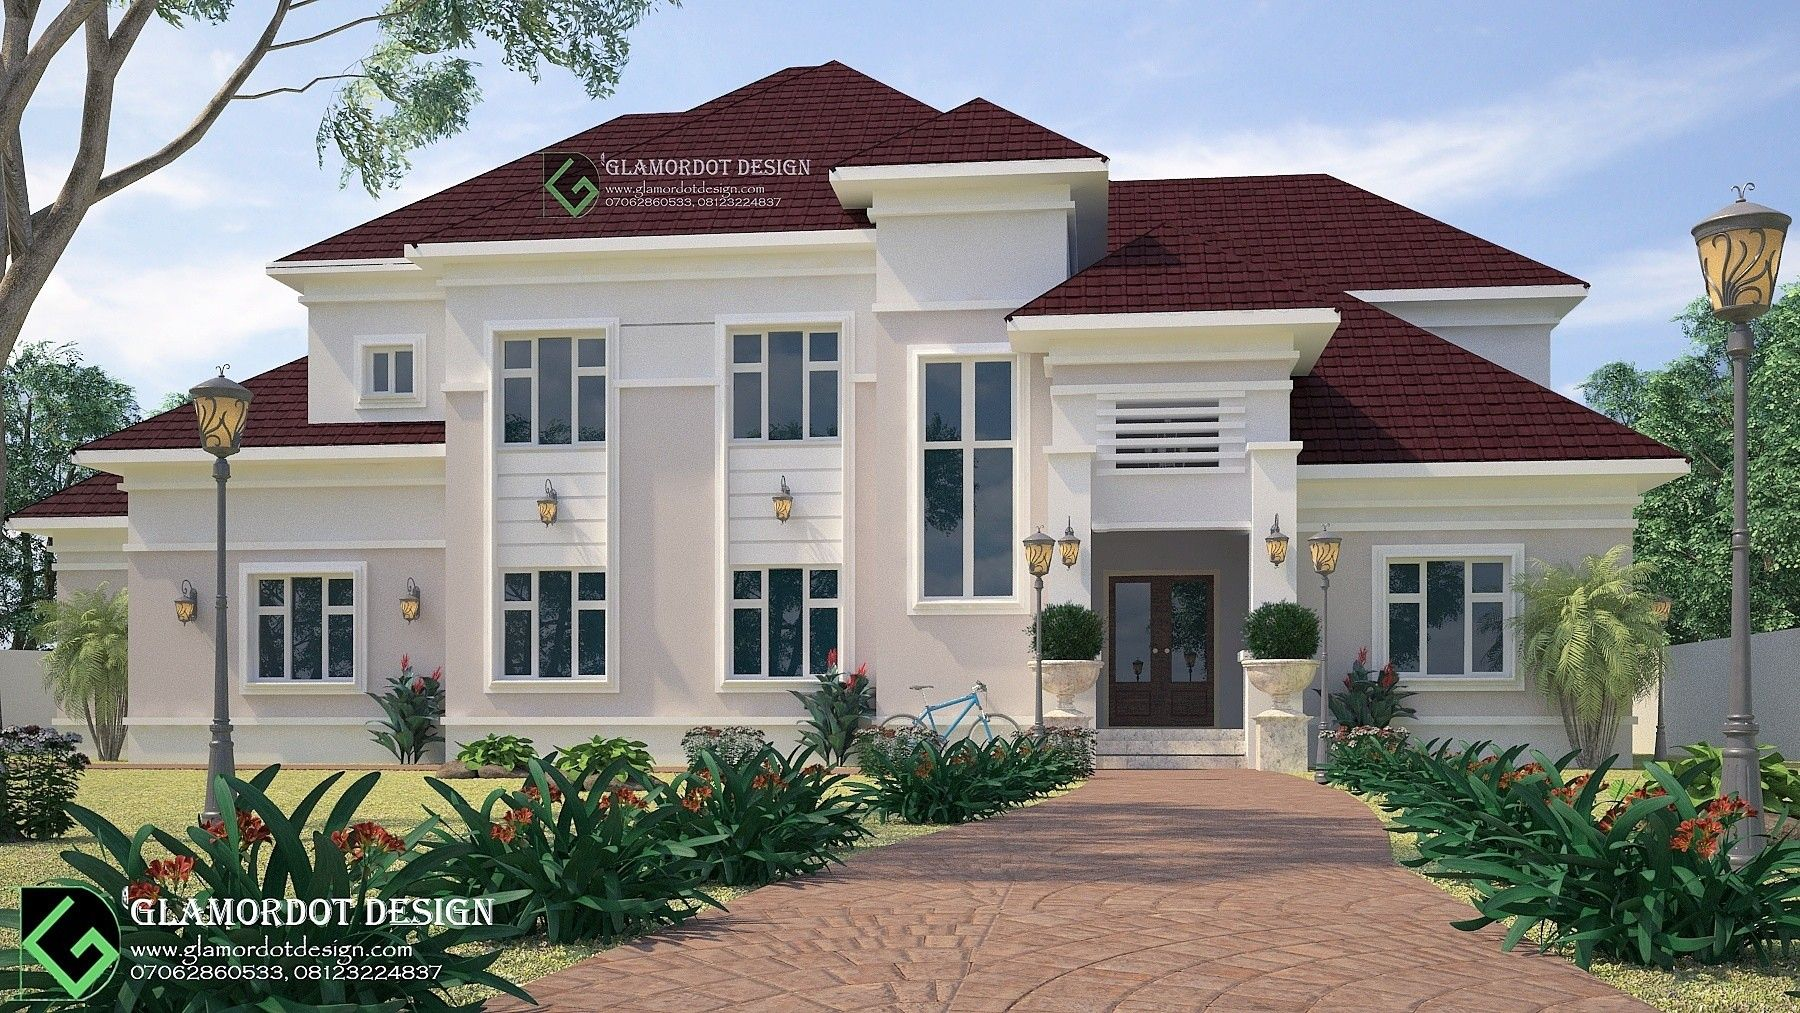 8 Bedroom Bungalow Mansion With A Penthouse Country Home With Style Small Mansion Mansions Homes Mansions